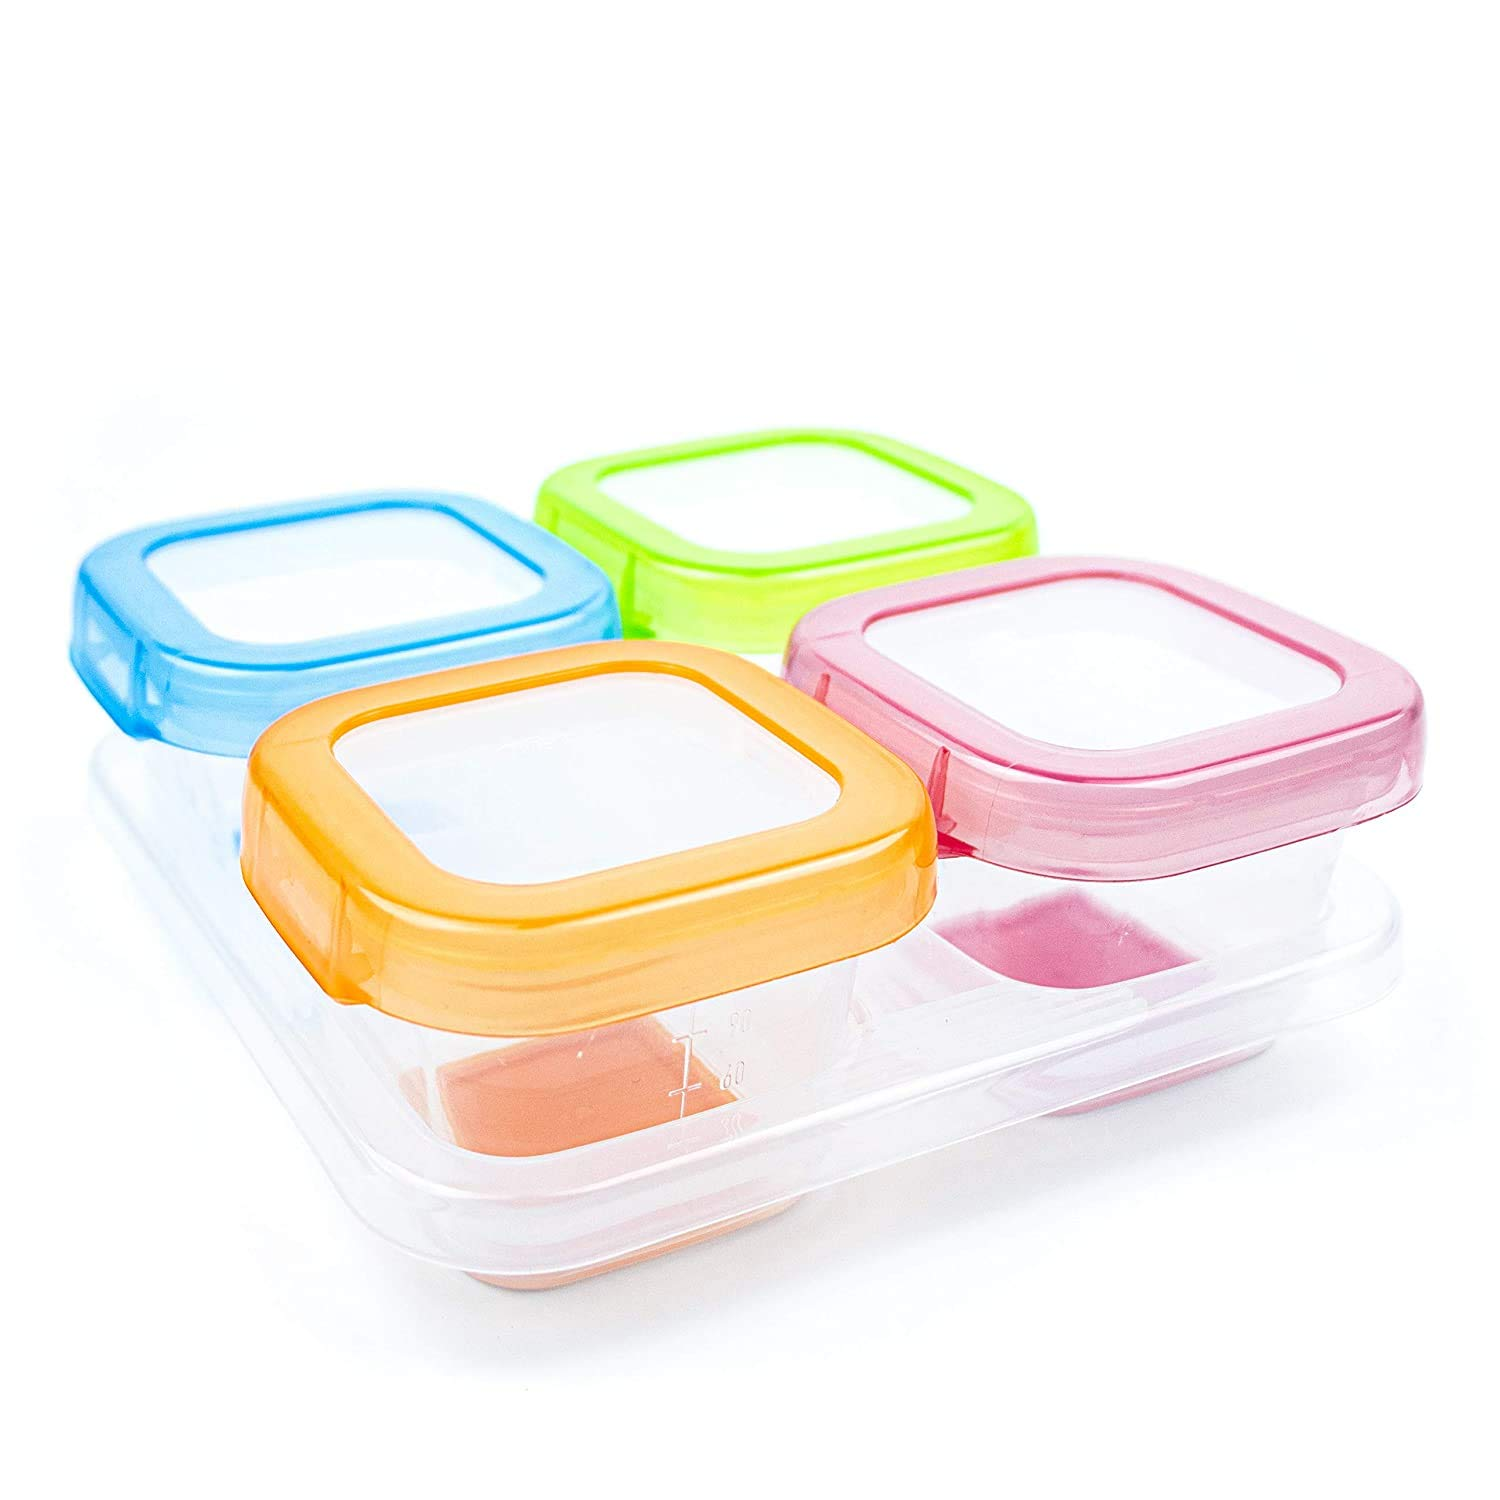 AAMUEE Baby Food Storage, 4 Pcs 4 oz Baby Blocks Food Storage Containers with Lids, Healthy Silicone Freezer Storage, Reusable Leakproof, Microwave/Dishwasher Friendly for Infants/Babies